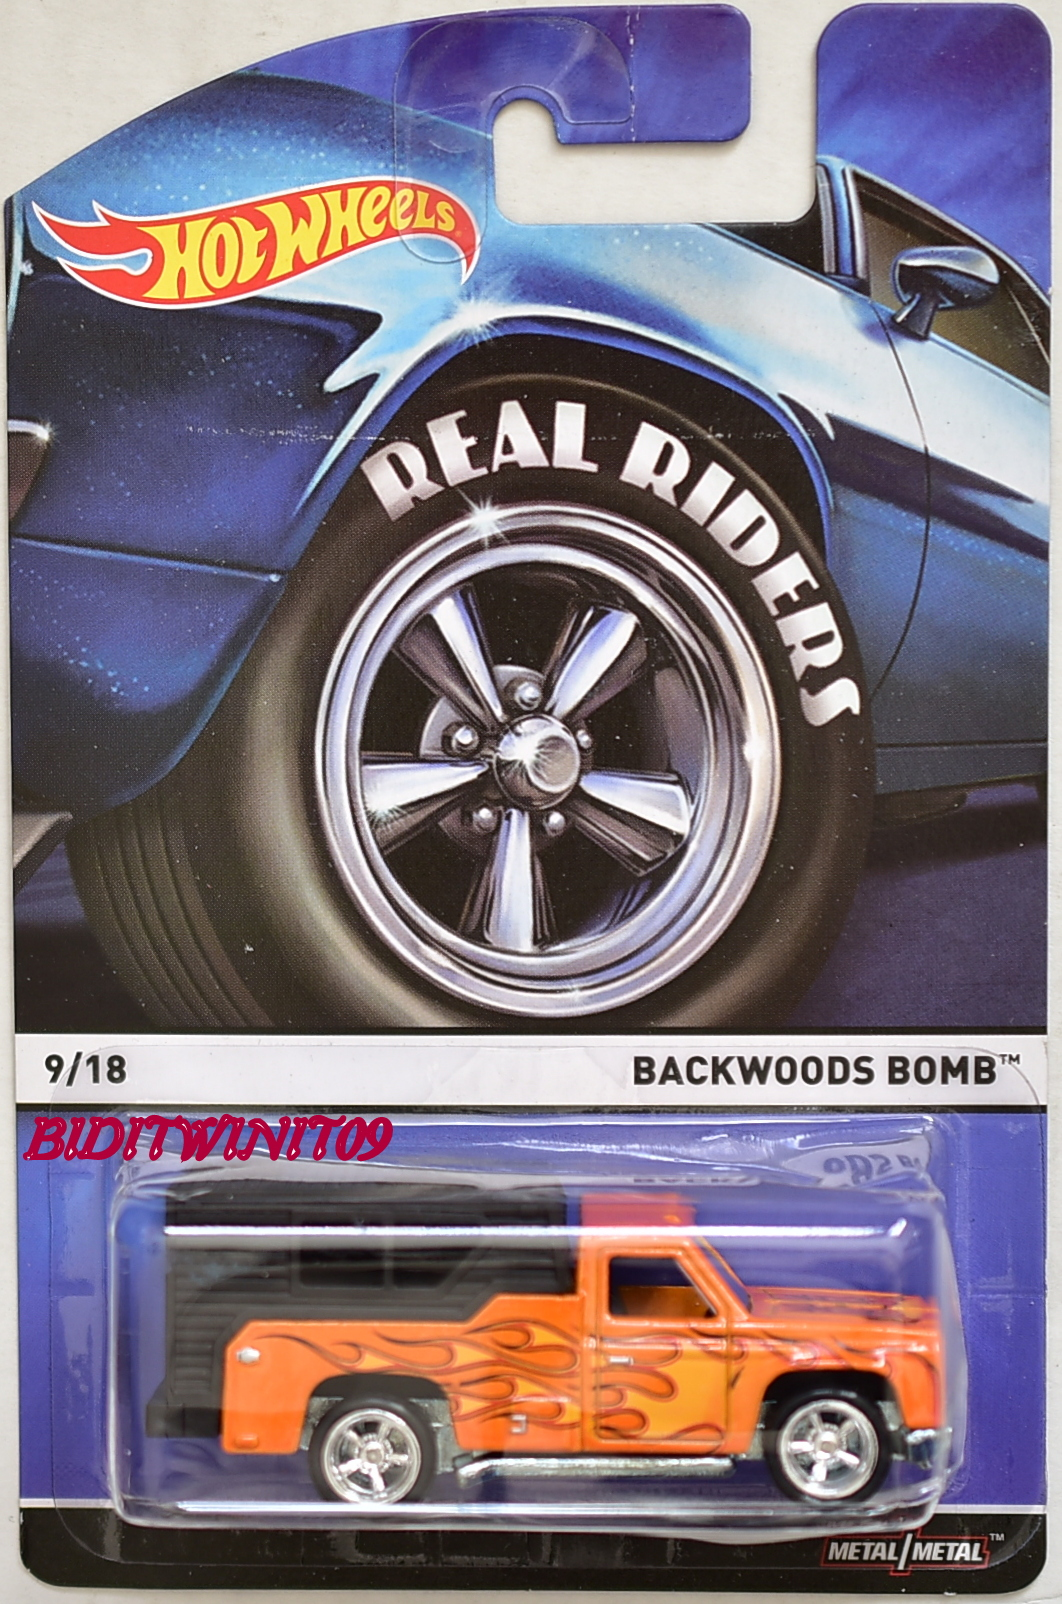 HOT WHEELS 2015 REAL RIDERS BACKWOODS BOMB #9/18